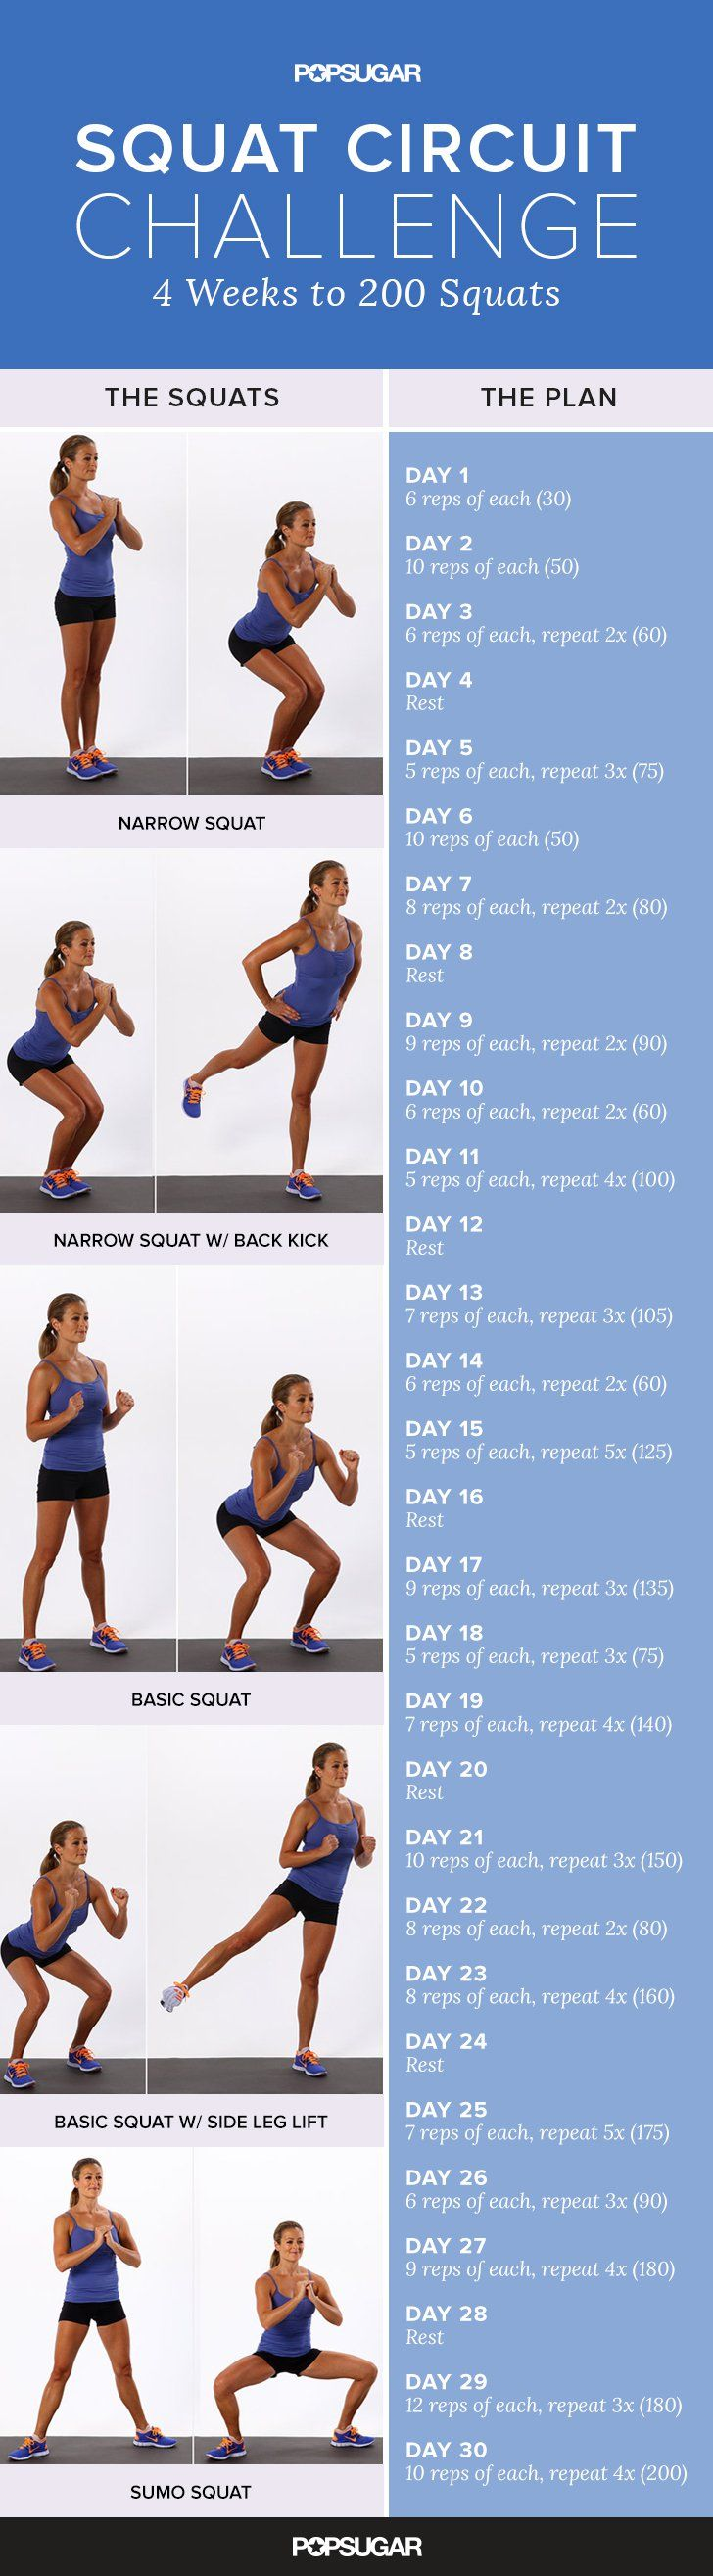 This Challenge Will Give You a Better Butt in Just 30 Days http://www.popsugar.com/fitness/Printable-Squat-Challenge-31141646